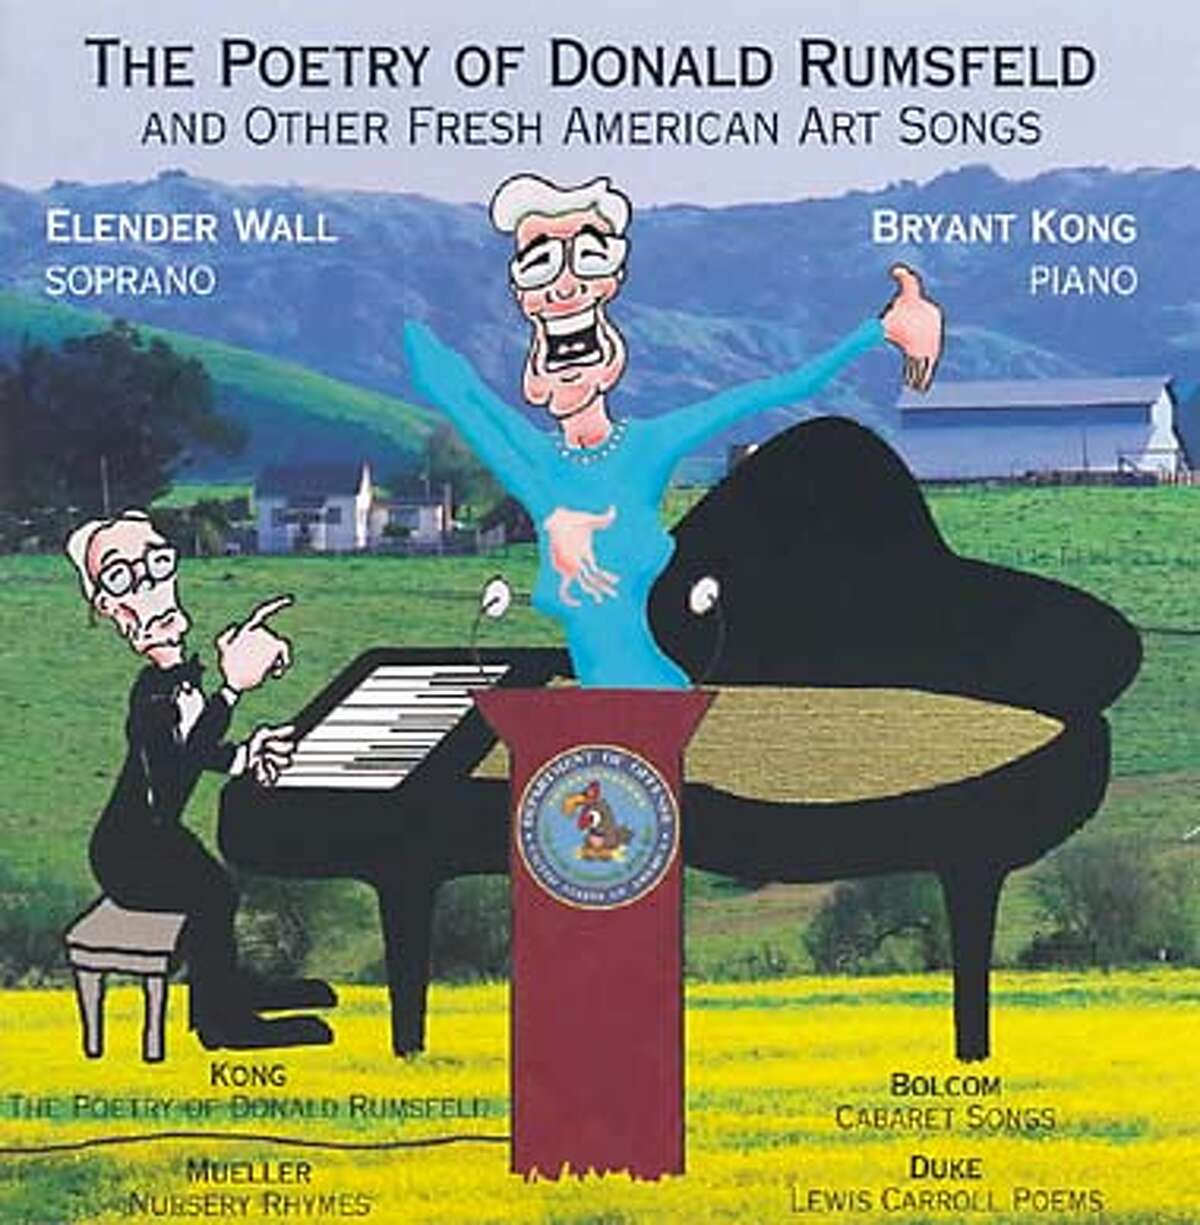 CD cover illustration: The Poetry of Donald Rumsfeld and other fresh American art songs. Elender Wall, soprano and Bryant Kong, piano